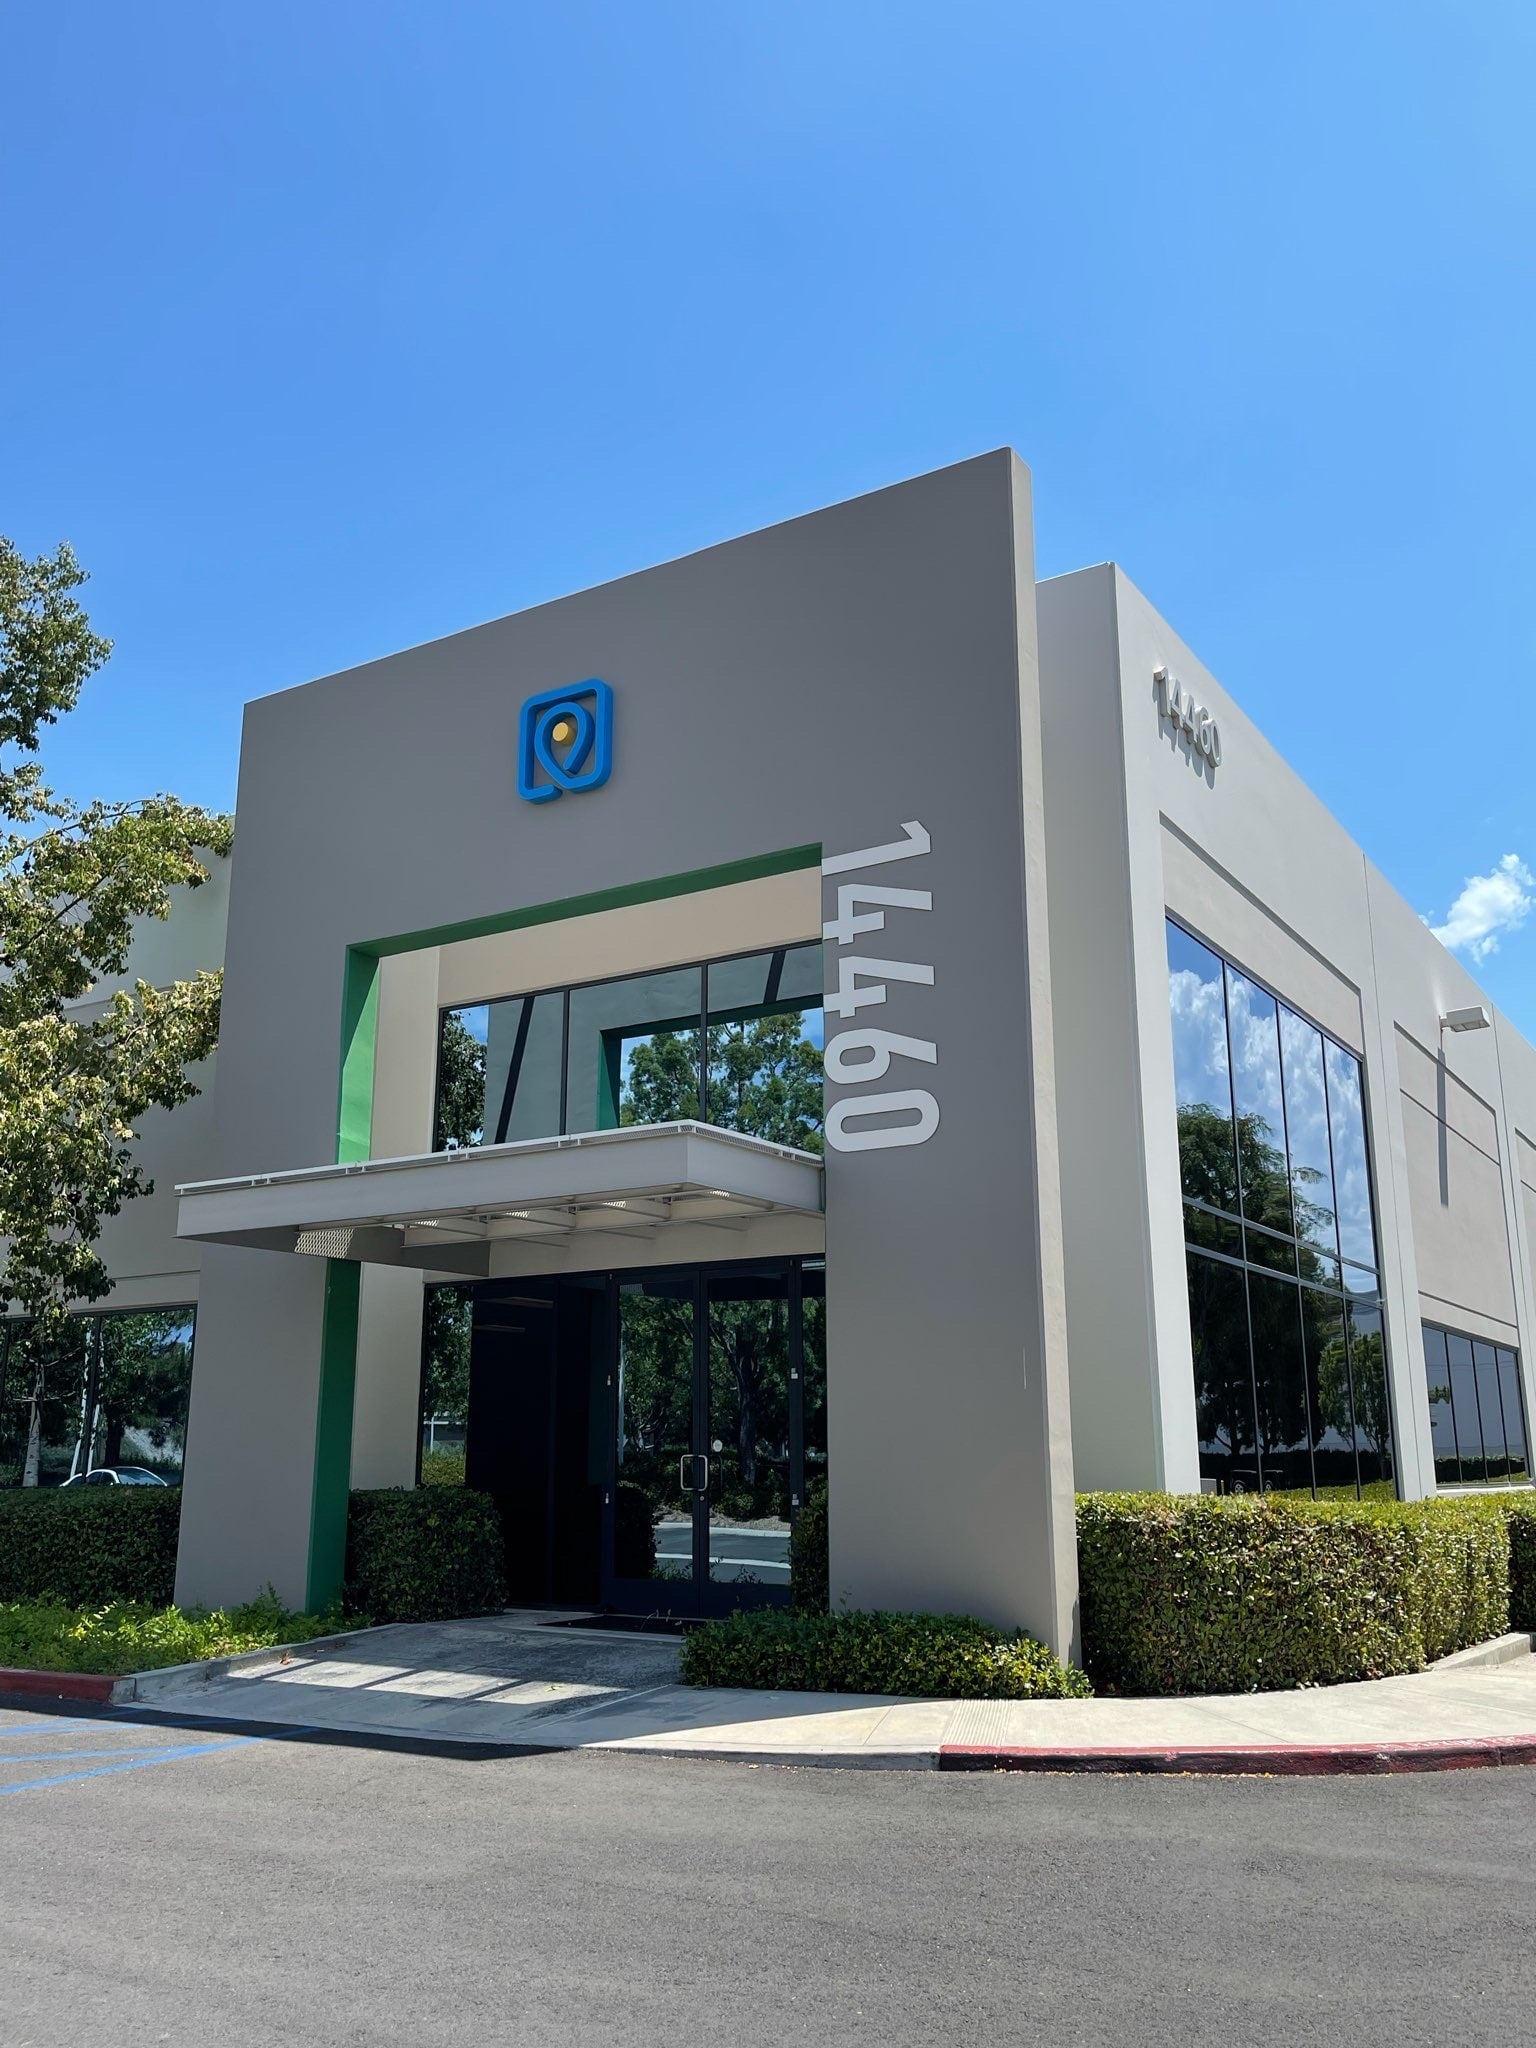 a picture showing an ecommerce fulfillment center of Sellvia based in Irvine, California